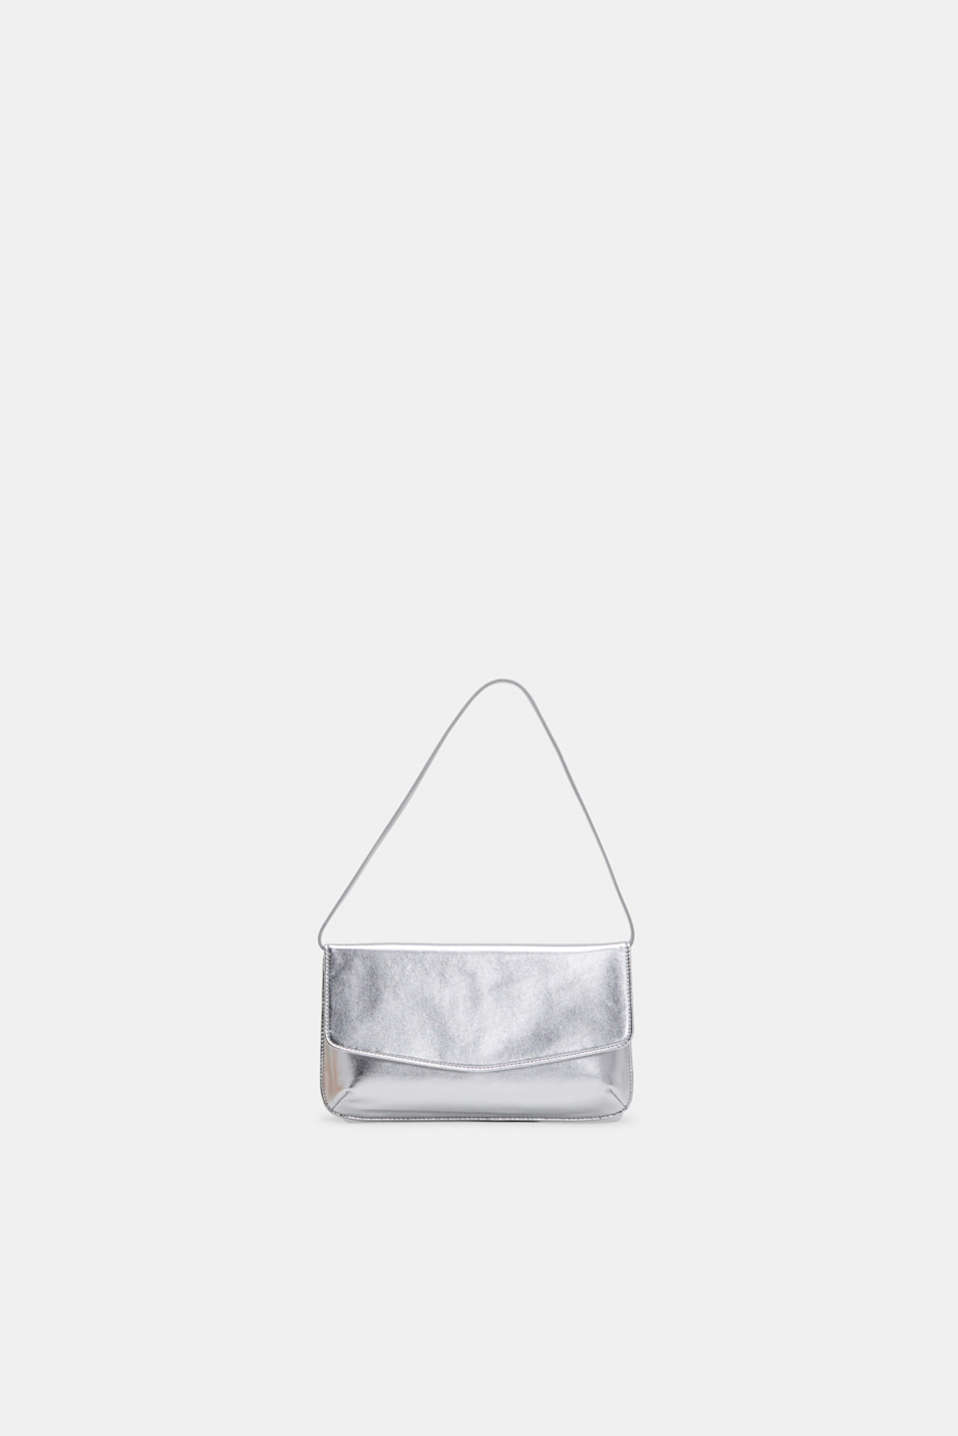 Esprit - Baguette bag in a metallic look